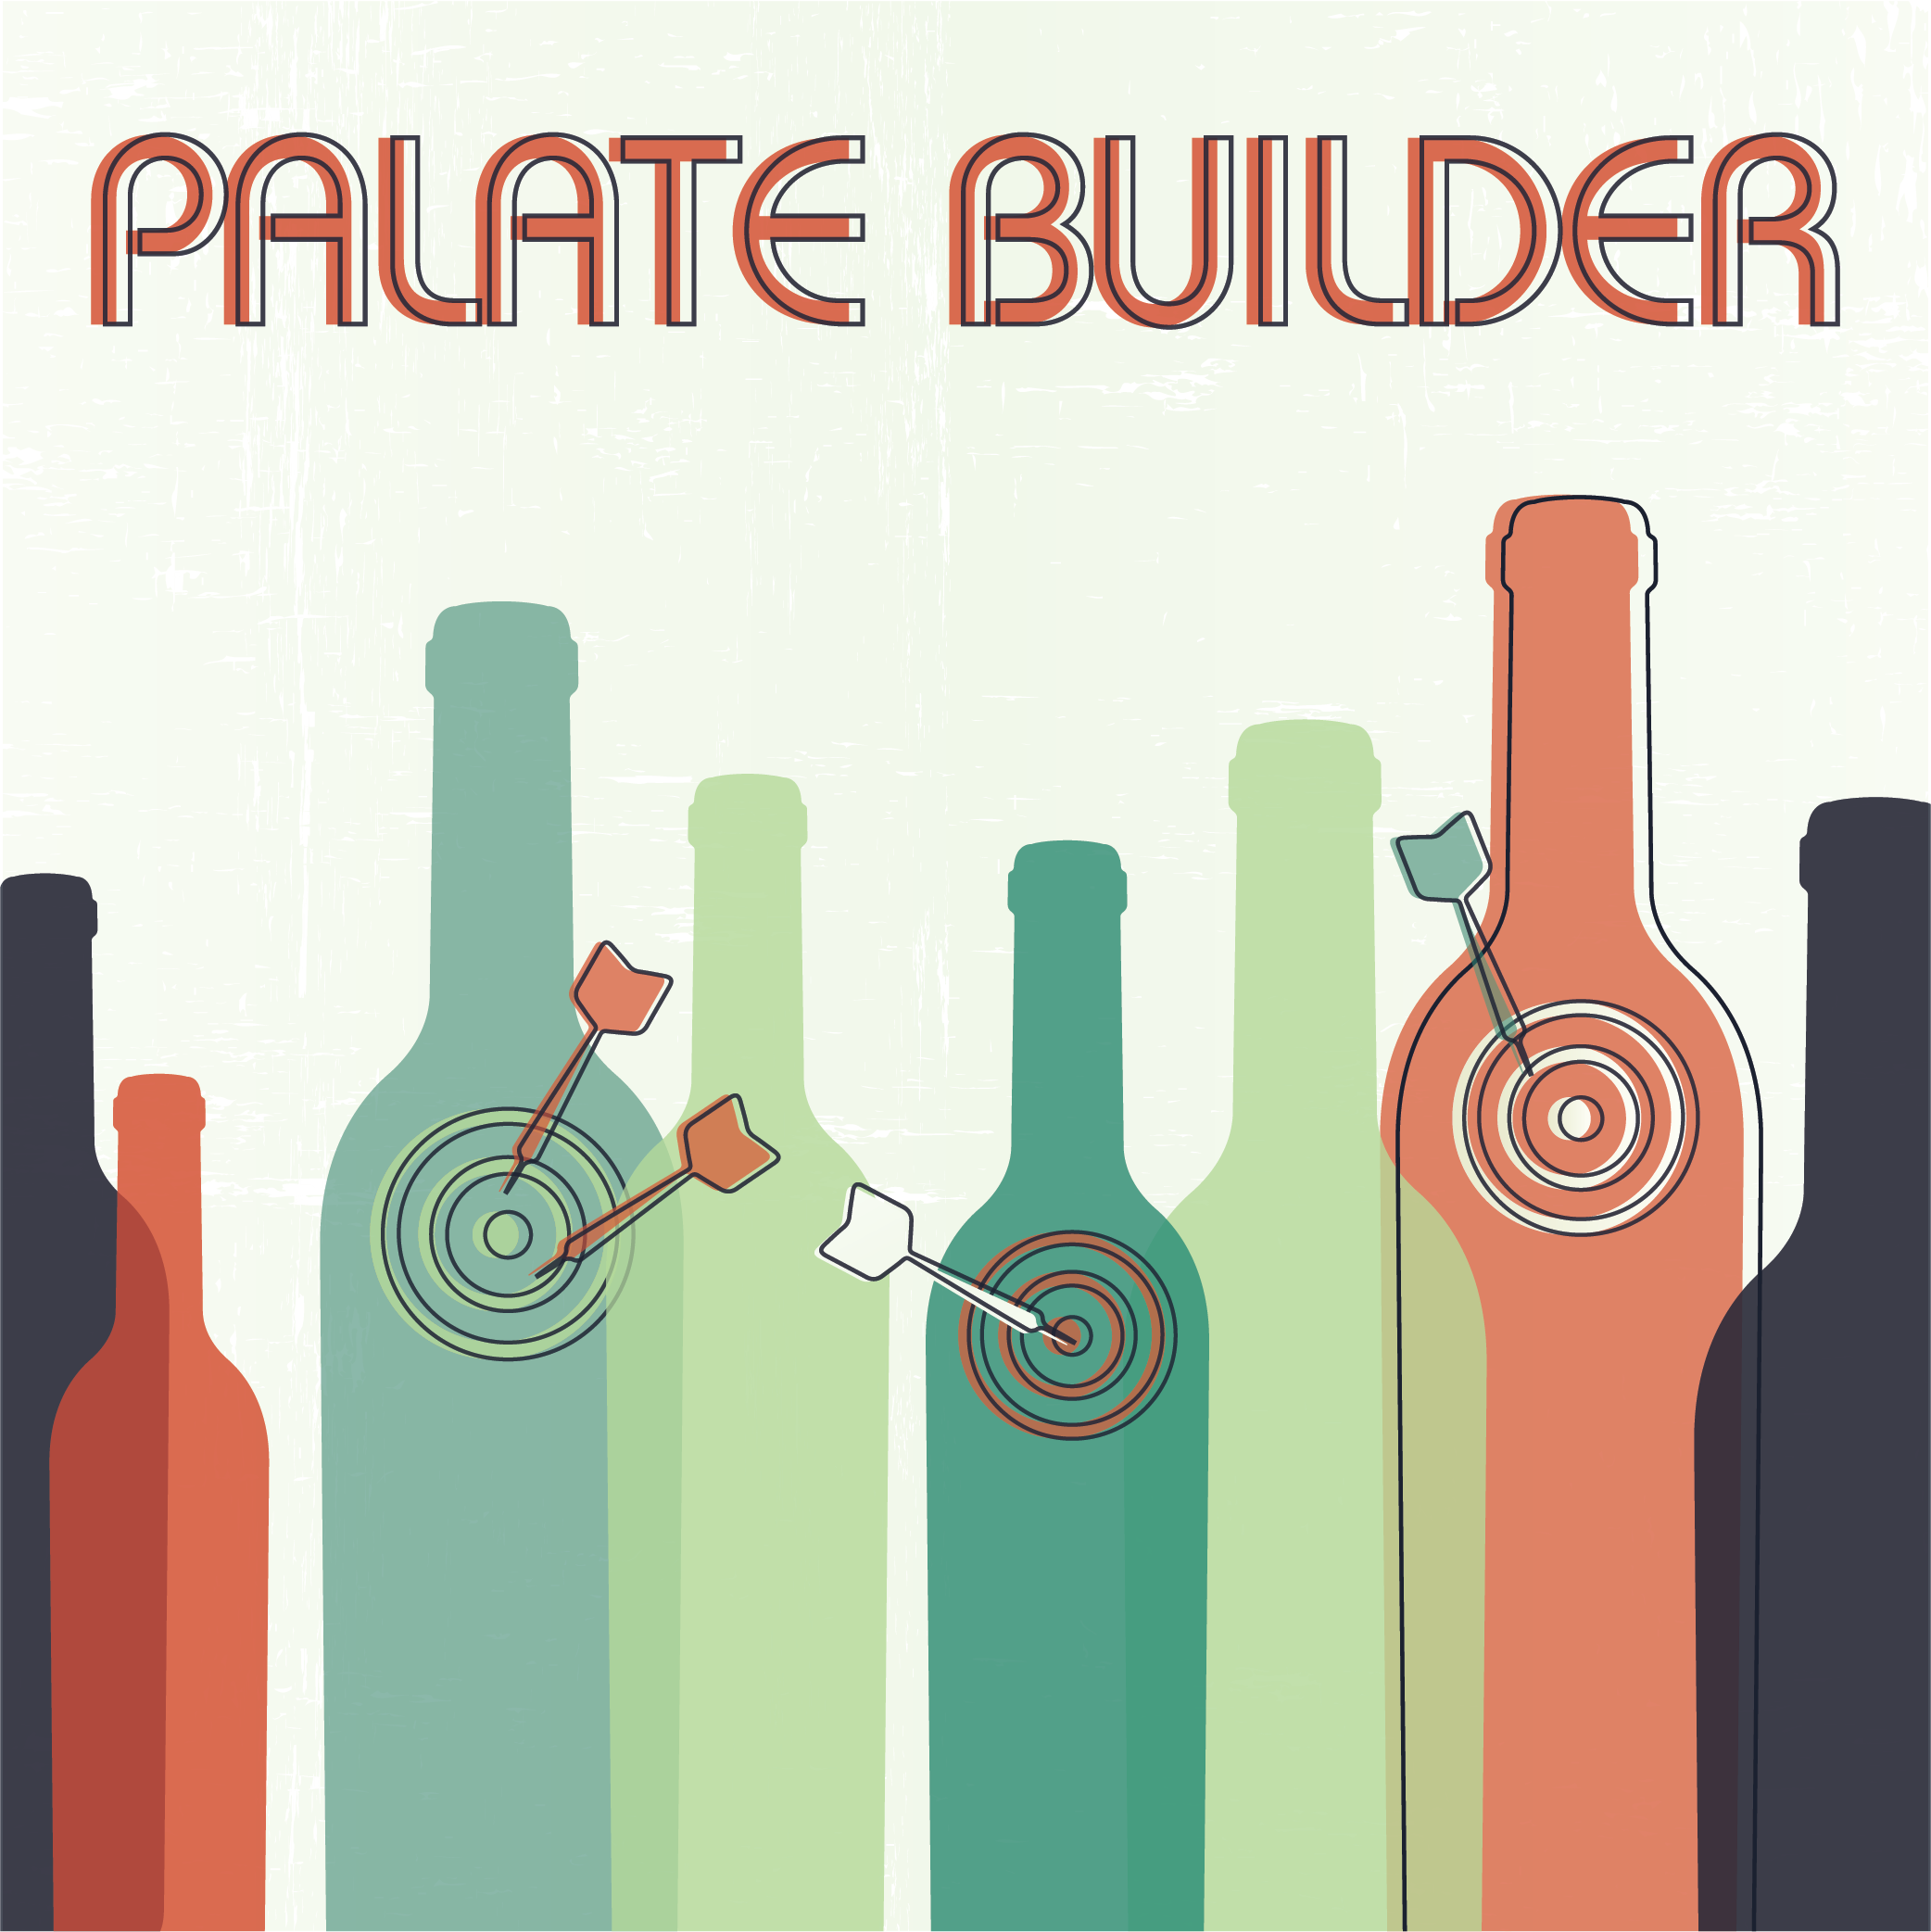 Palate Builder  Downtown Los Angeles  August 31, 2019   SOLD OUT